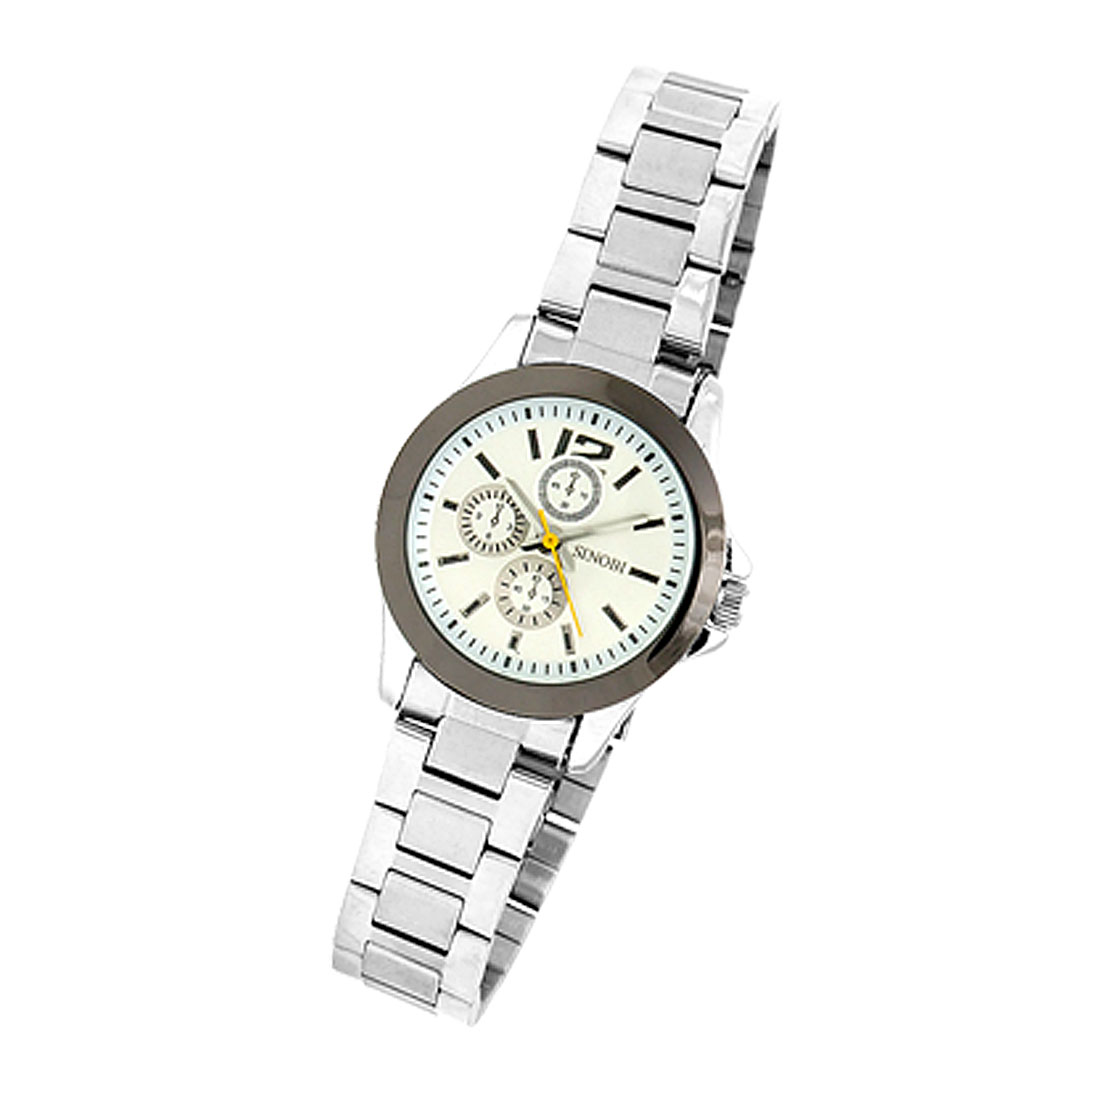 Fashion Metal Band White Dial Round Watchcase Lady's Watch